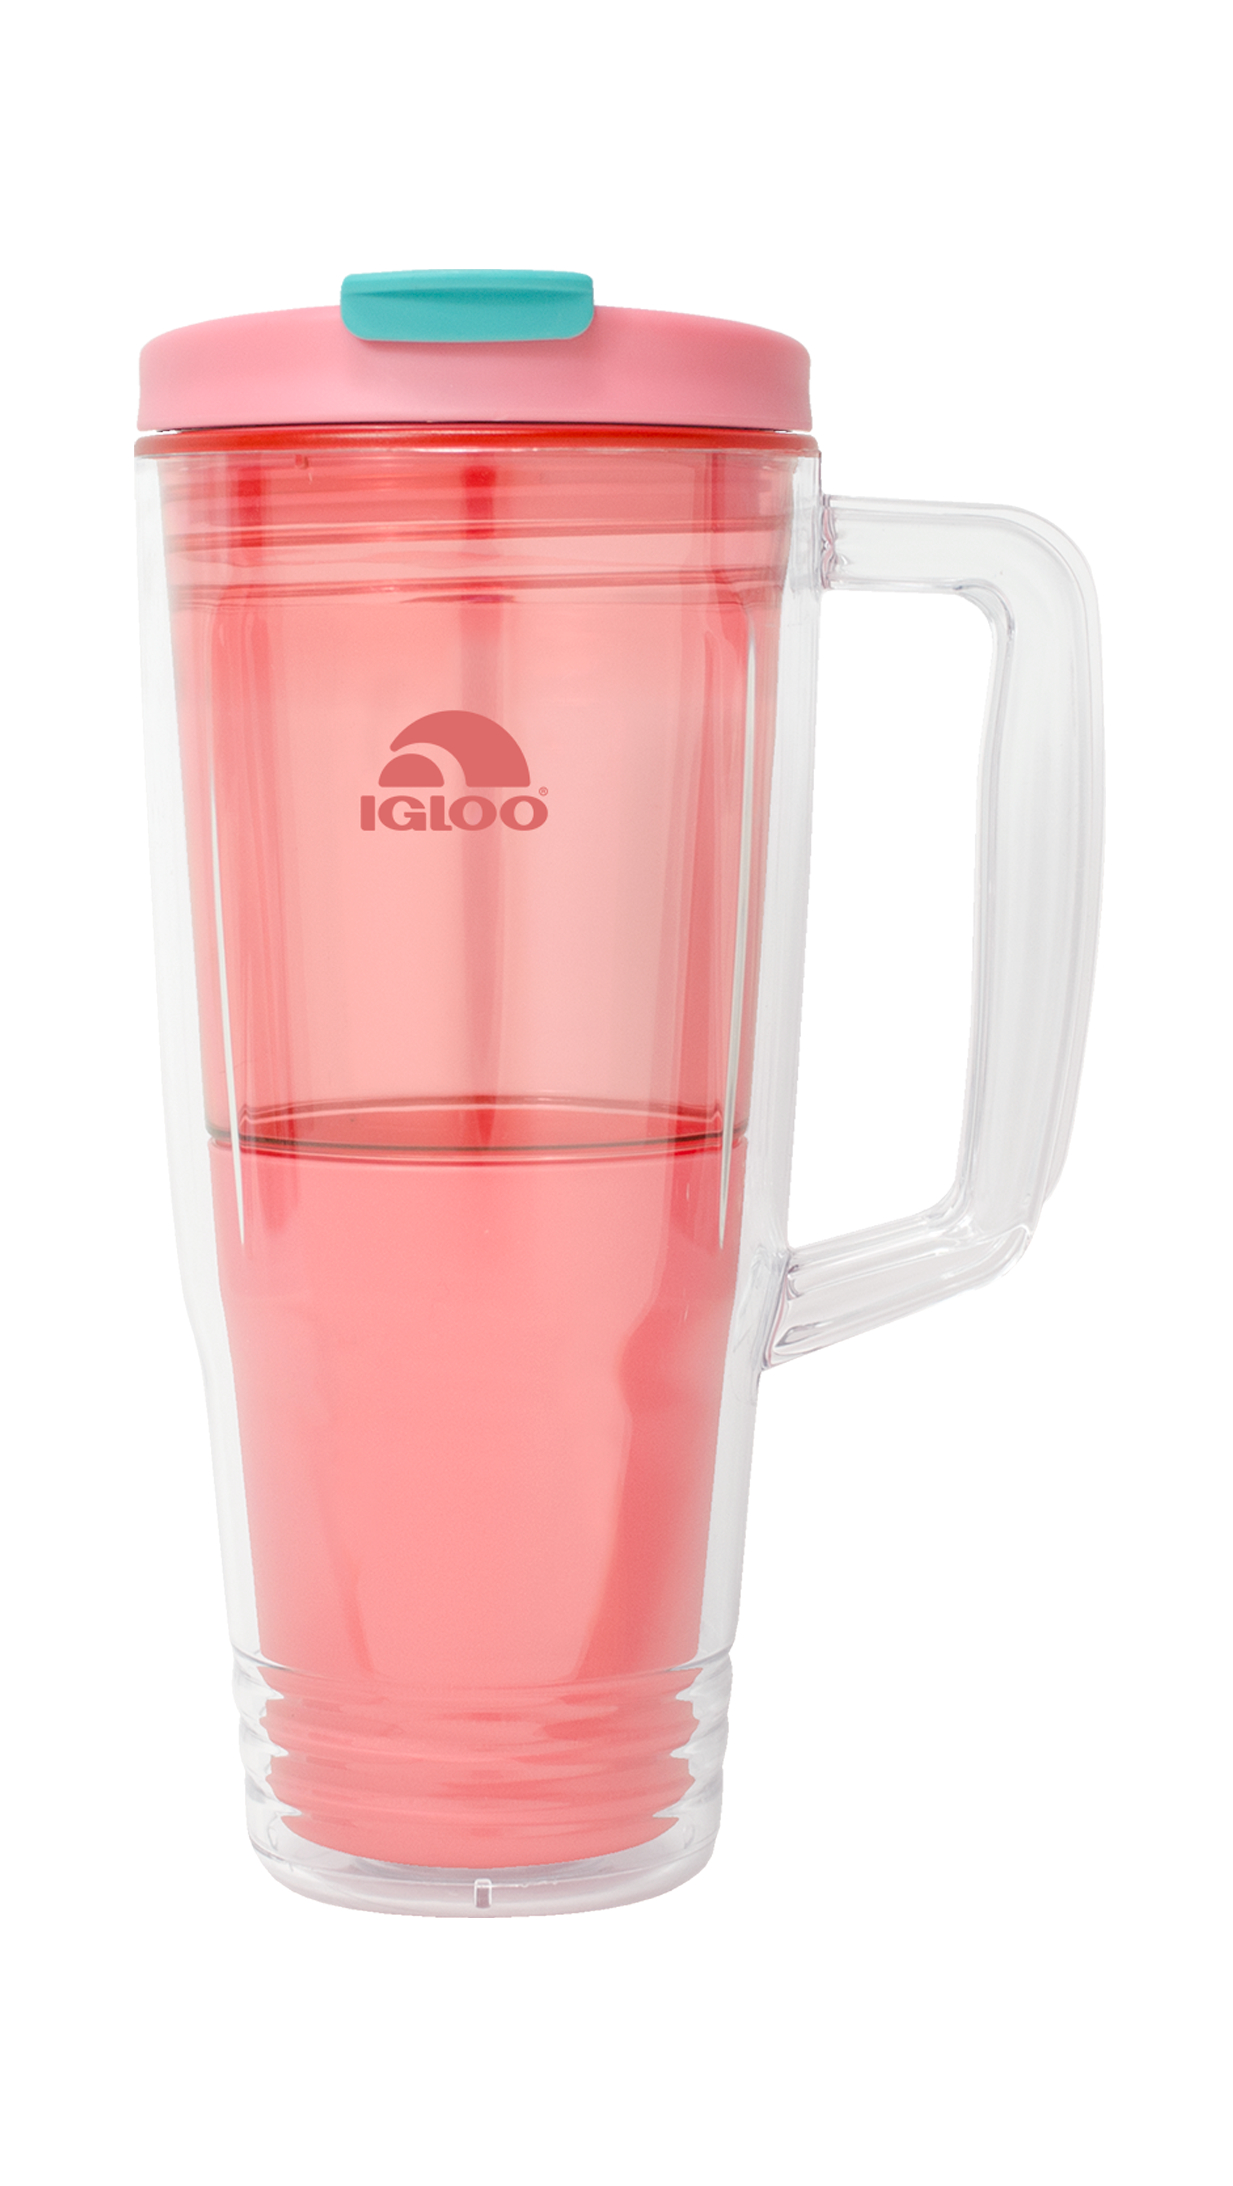 a6f346259f3 Travel Mugs - Walmart.com